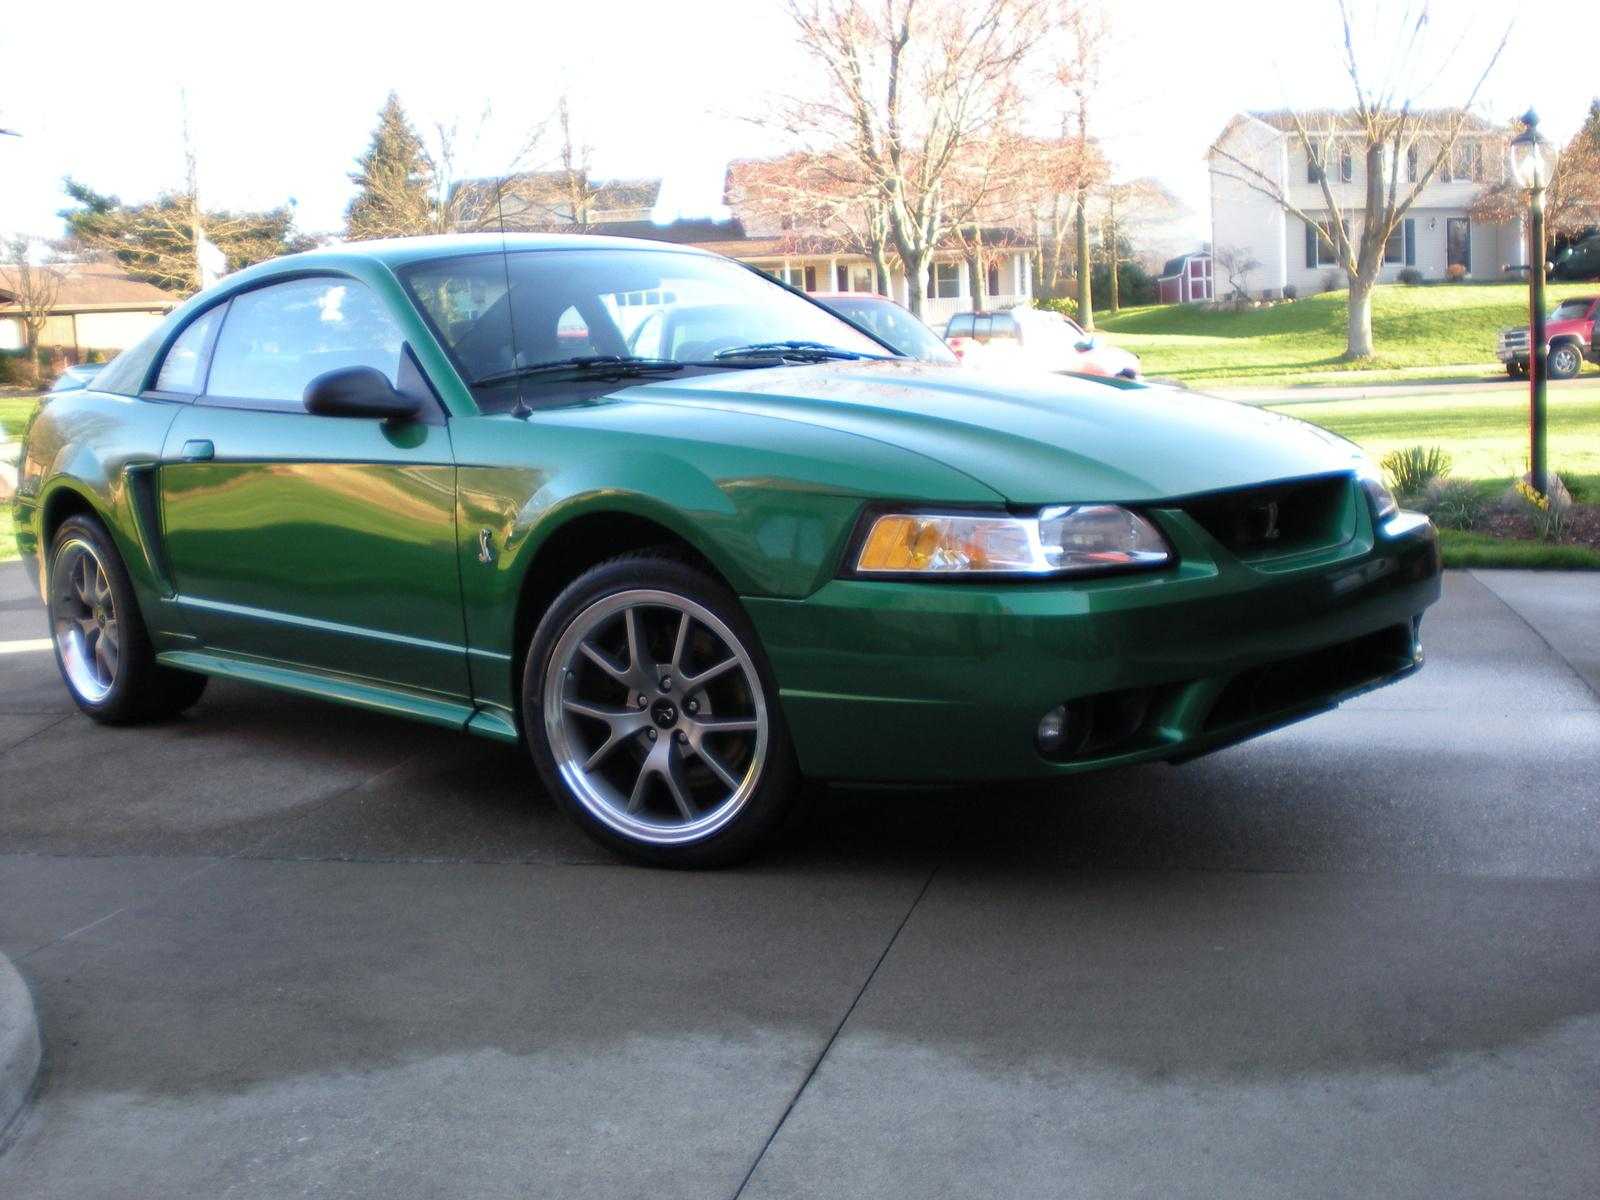 1999 Ford Mustang Svt Cobra Information And Photos Zombiedrive Wiring Diagrams 1995 800 1024 1280 1600 Origin